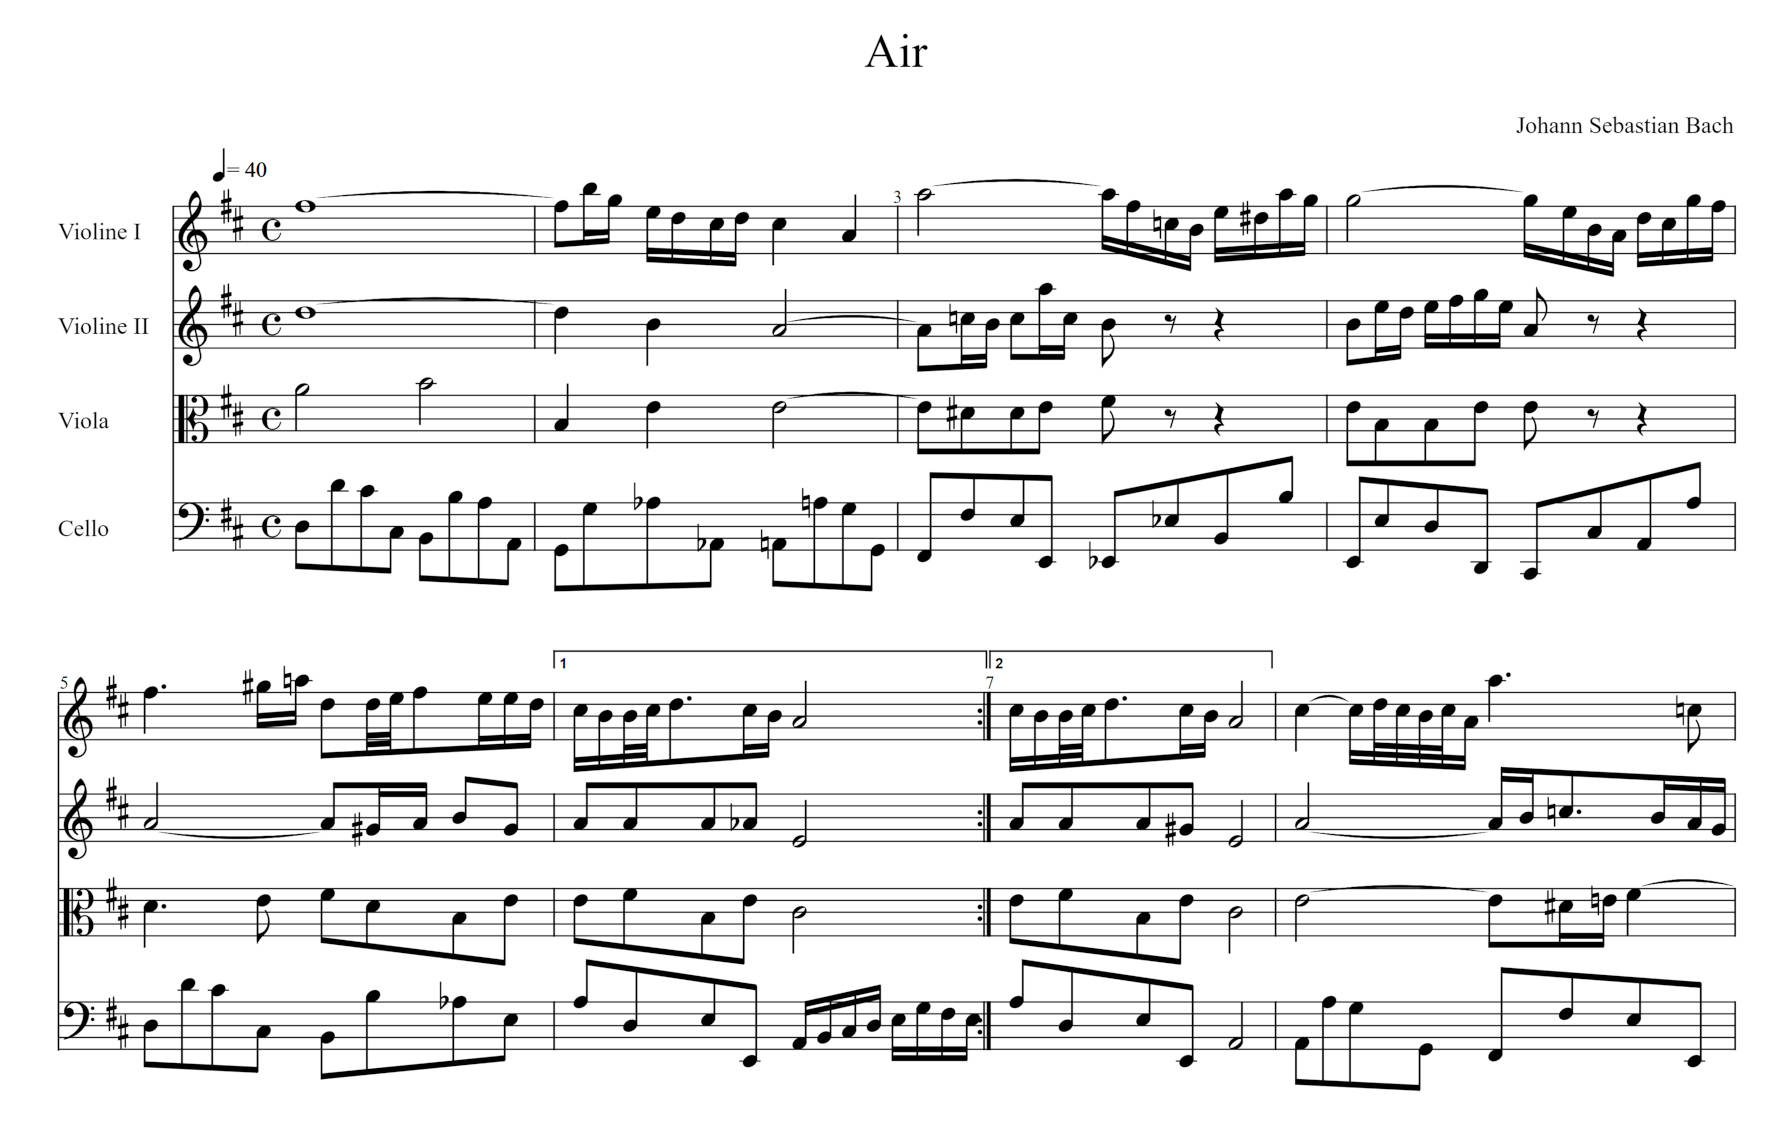 Musical notation of J.S. Bach's 'Air'.